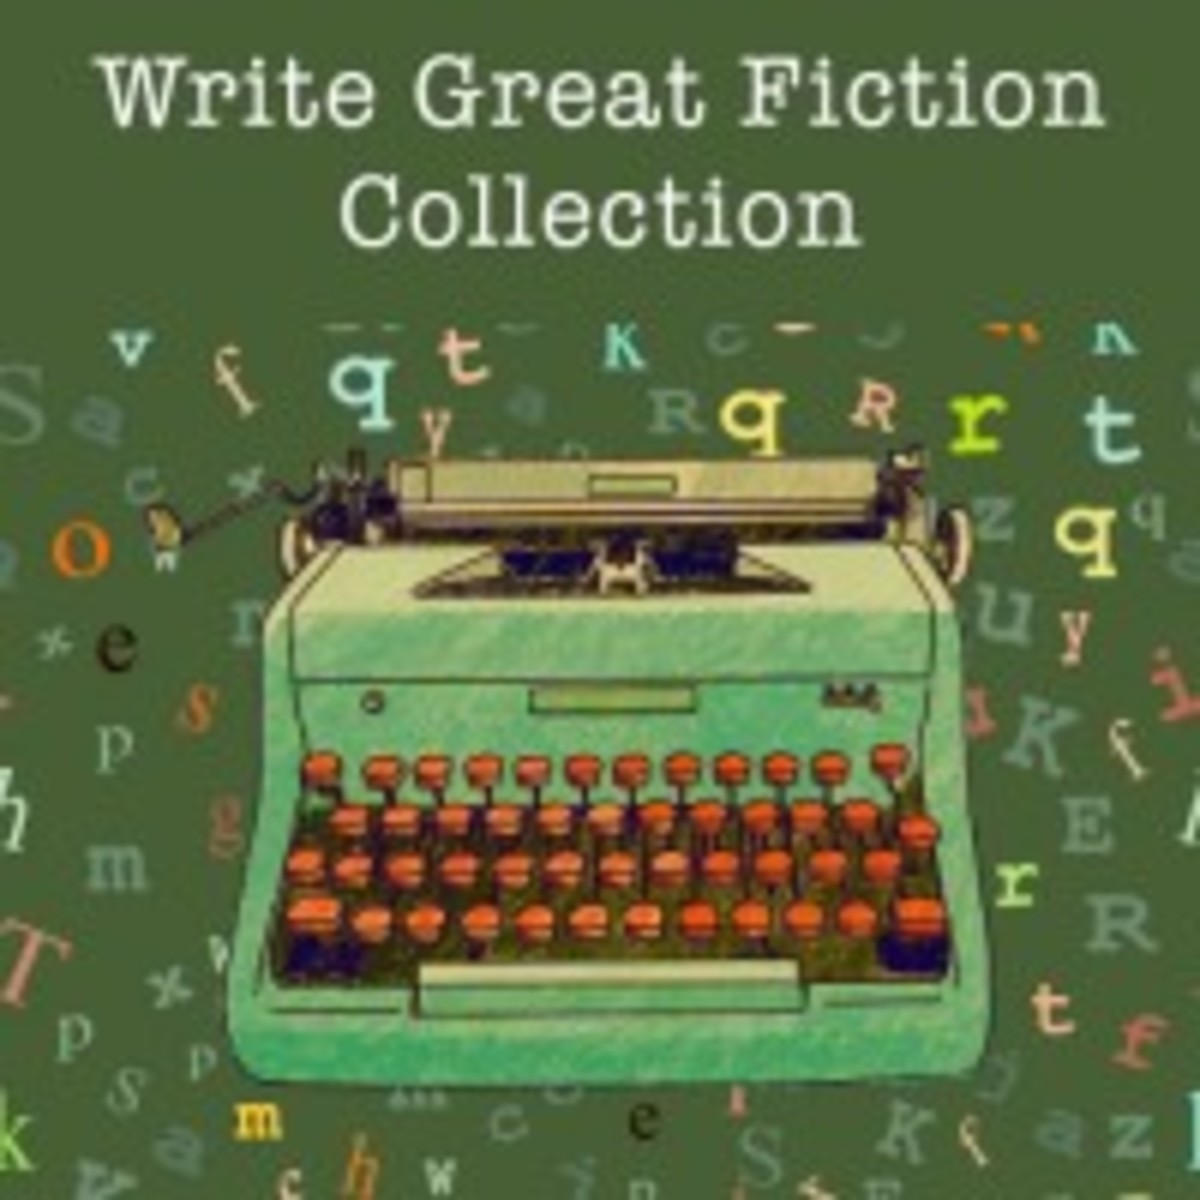 12576_wd_writegreatfiction_product